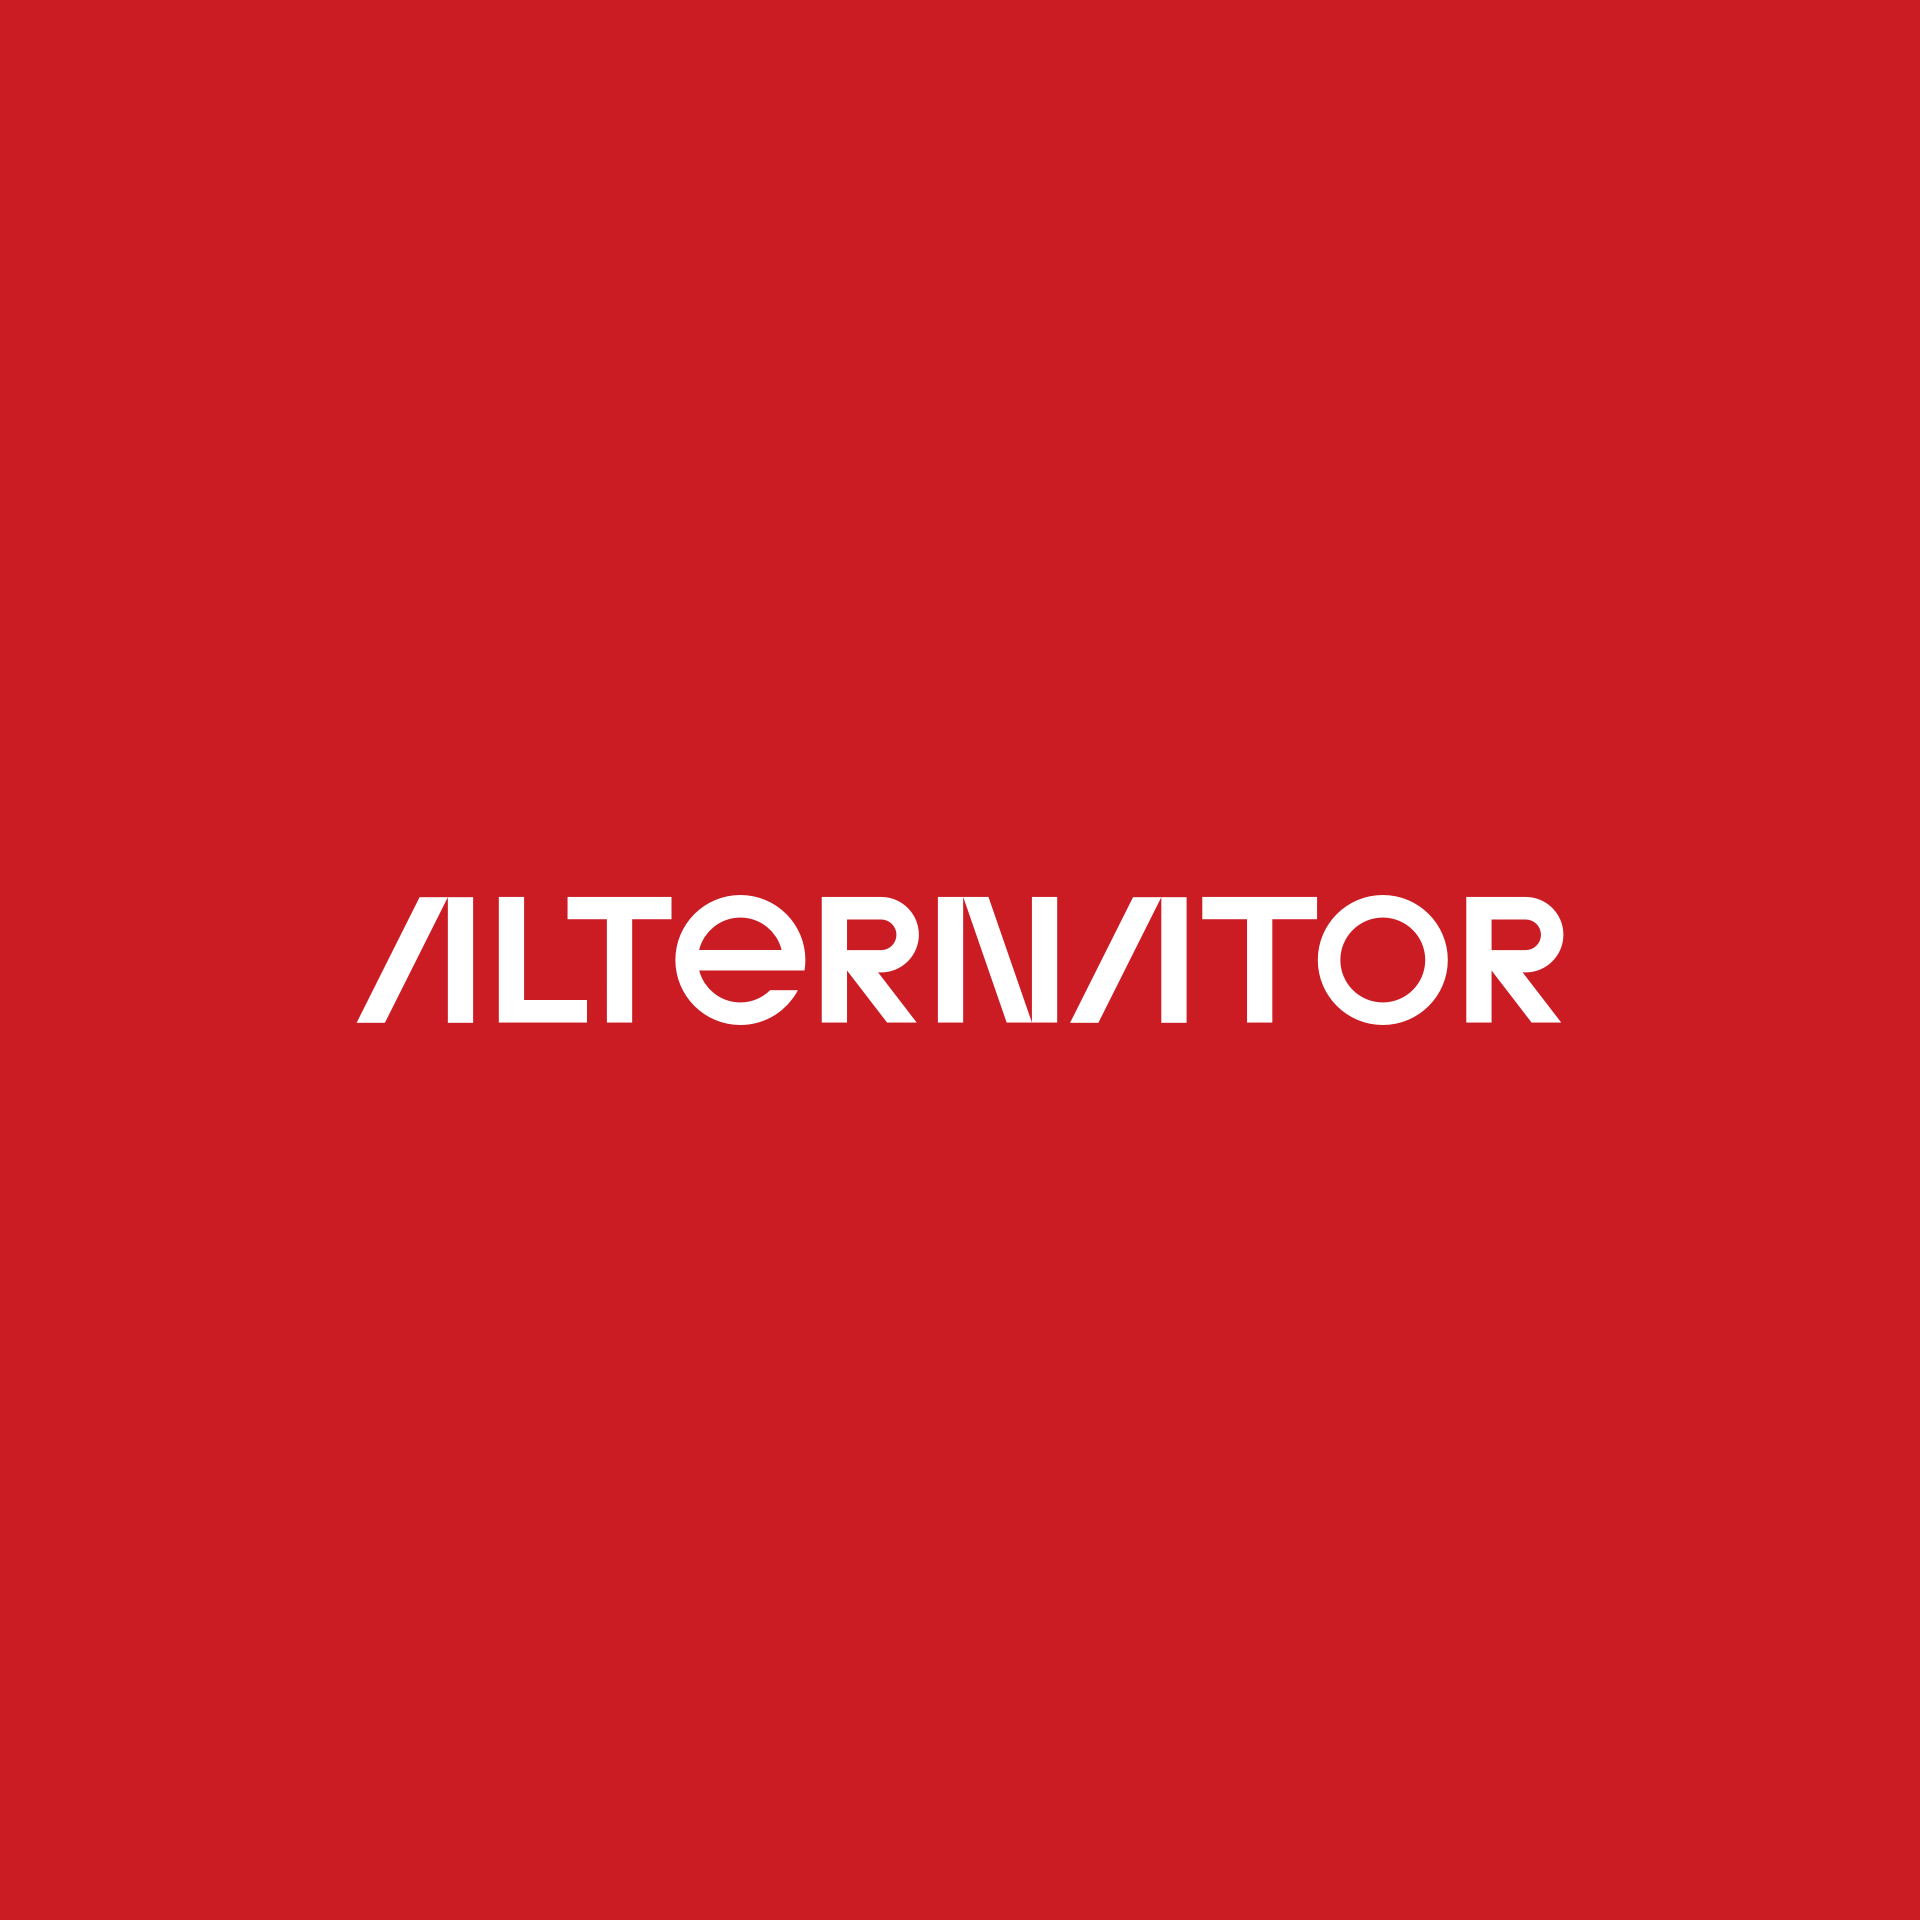 Alternator logotip